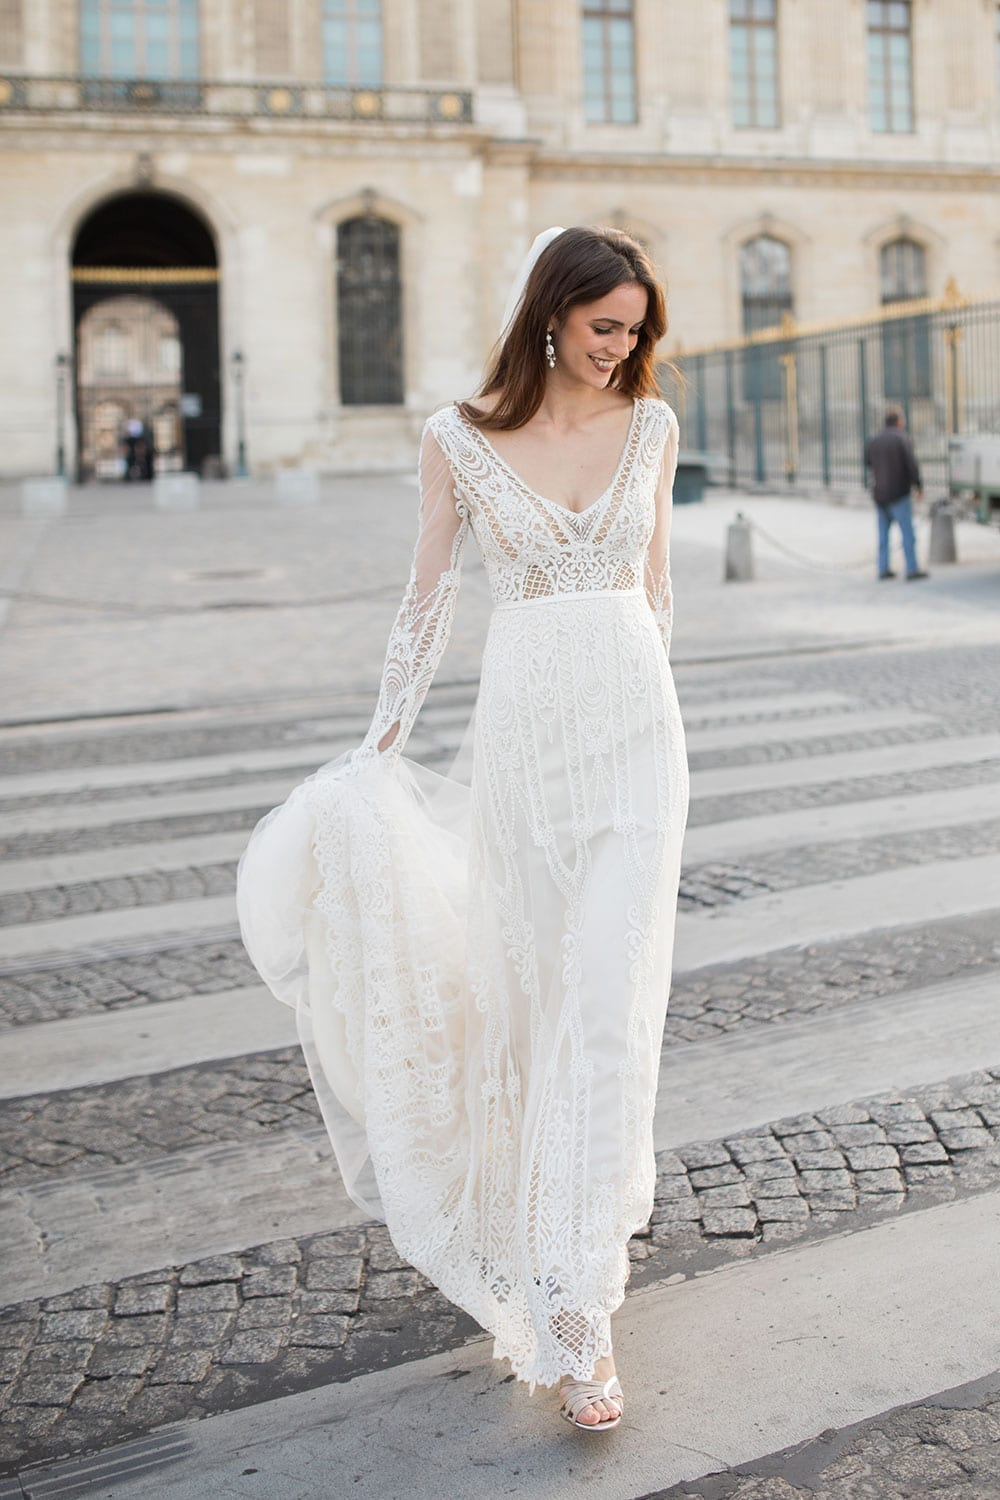 Model wearing Vinka Design Briar Wedding Dress, with gorgeous corded embroidered lace features, a sheer ivory base and long fitted sleeves with a gentle bell shape wrist. Crossing road in Paris